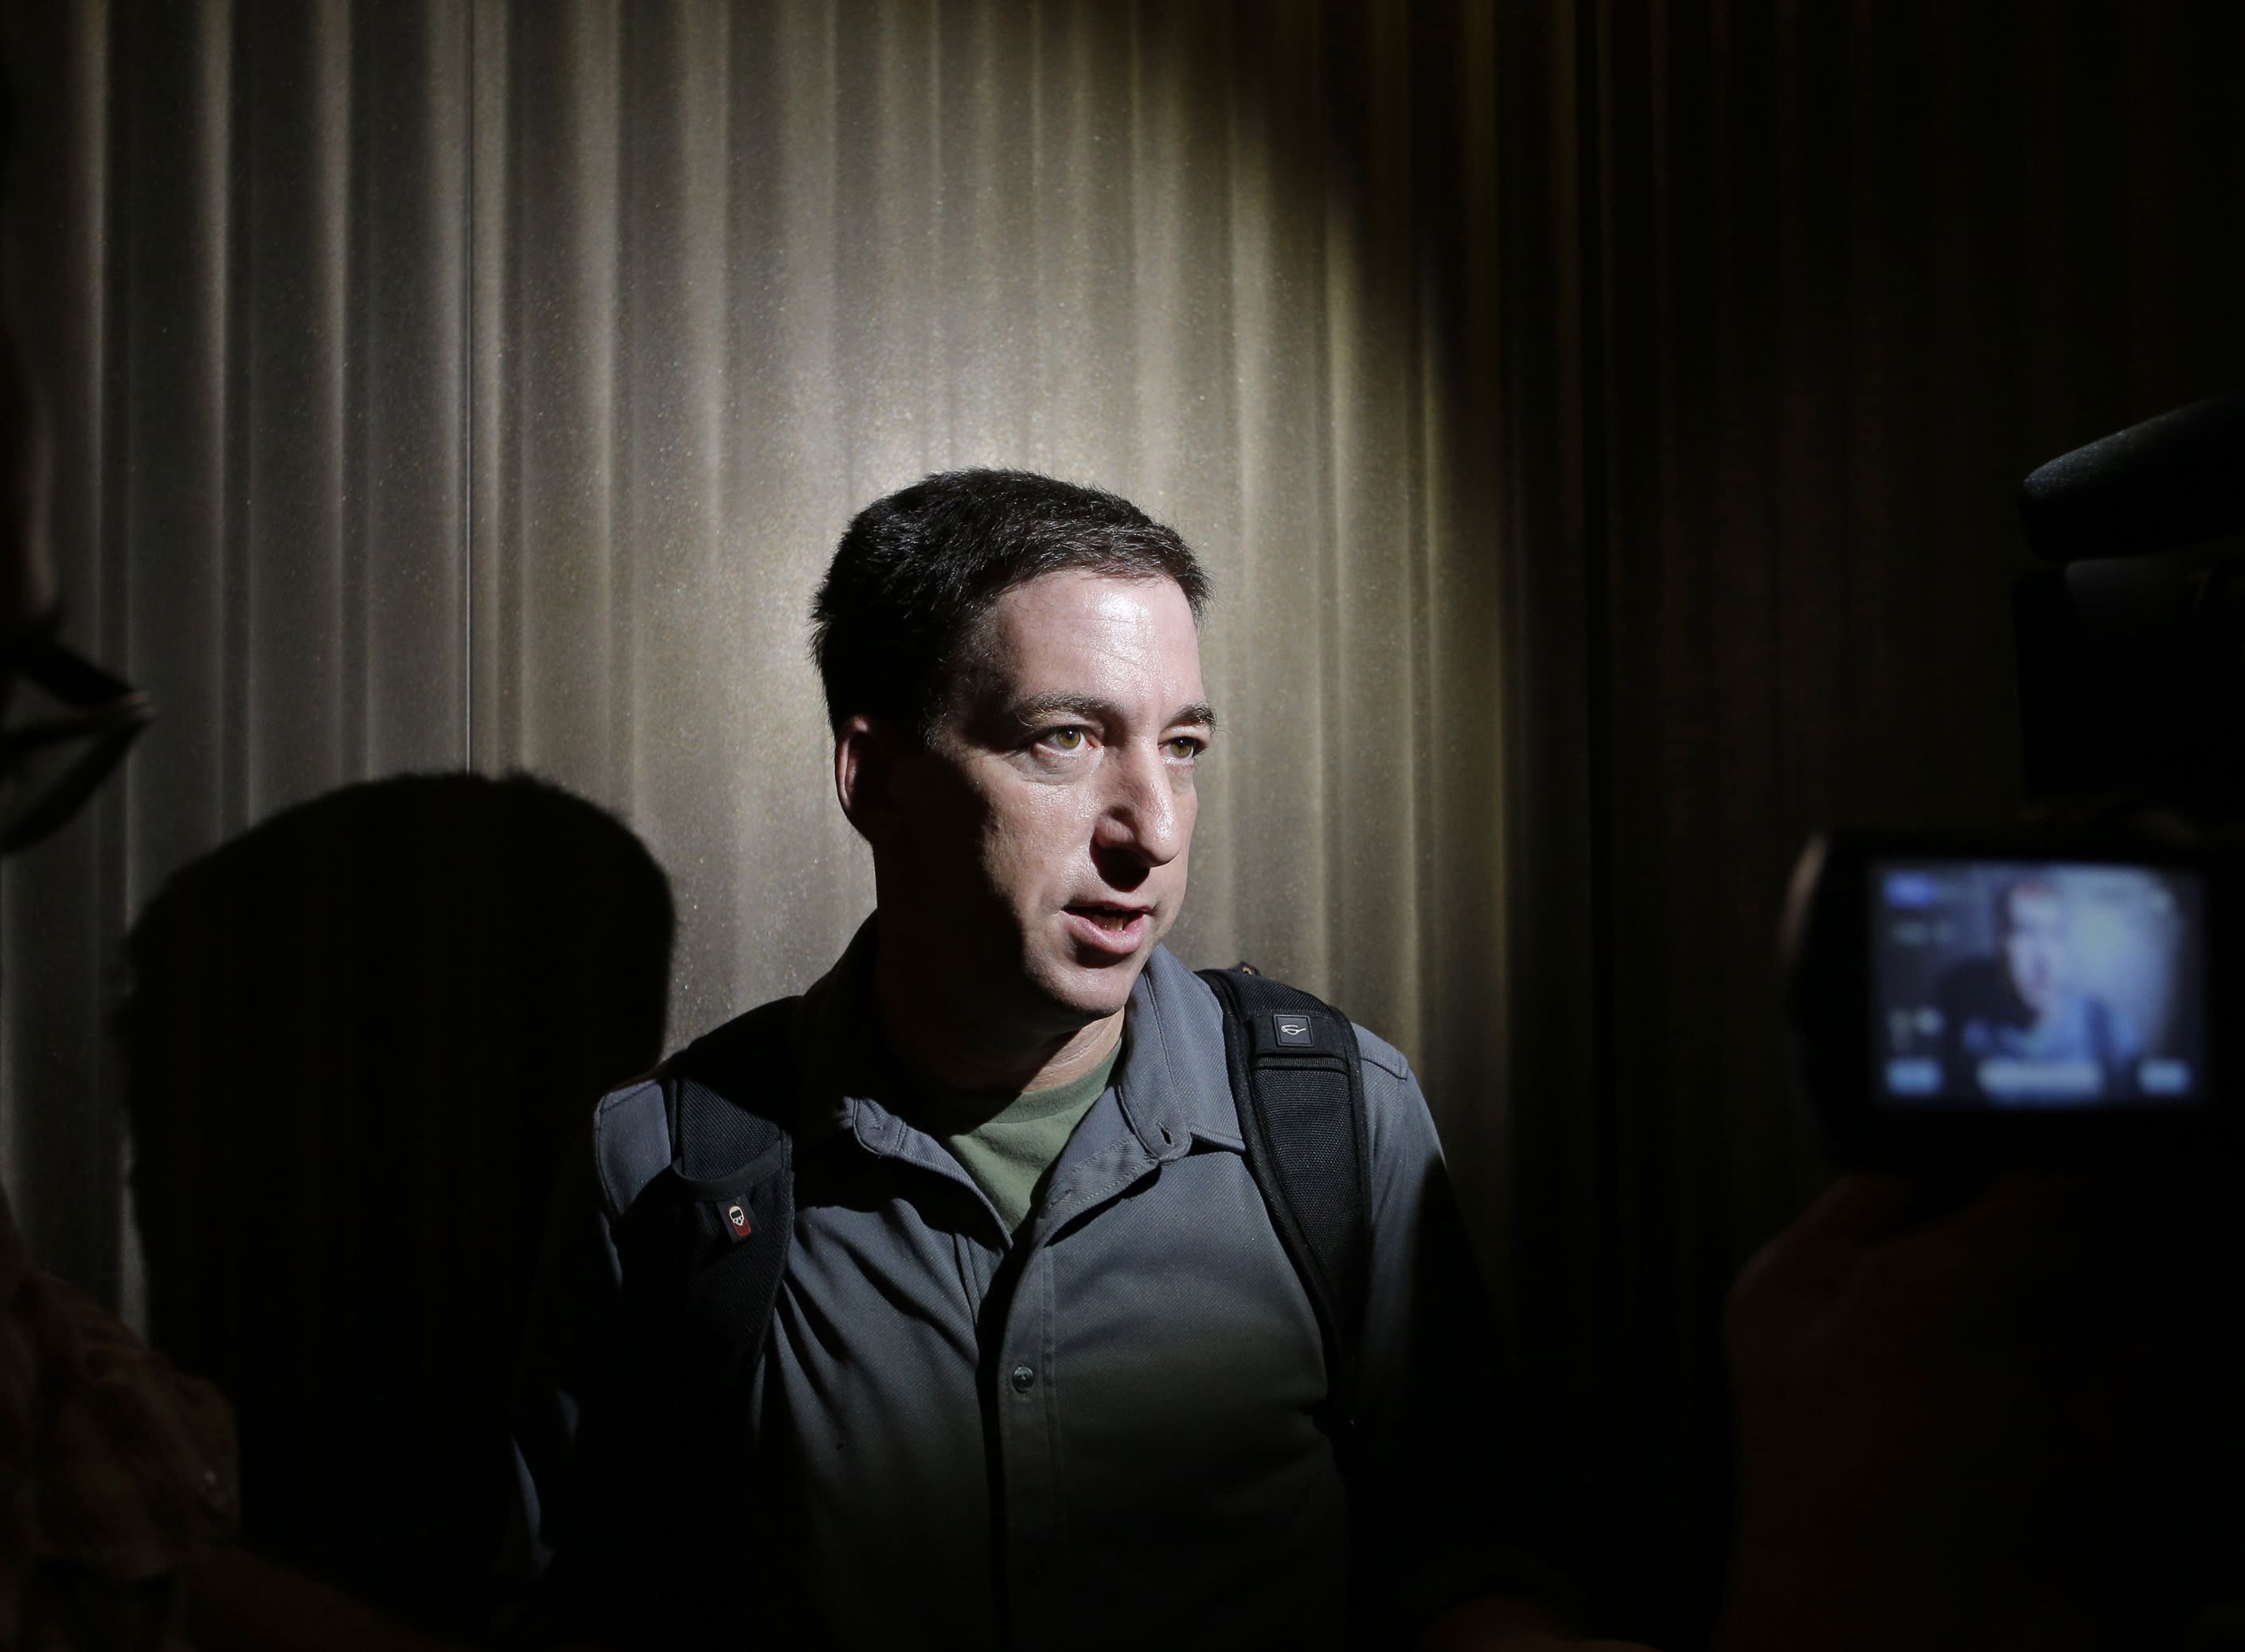 """FILE - In this June 10, 2013, file photo The Guardian reporter Glenn Greenwald speaks to reporters at his hotel in Hong Kong. Greenwald first reported former NSA contractor Edward Snowden's disclosure of NSA's government surveillance programs. On Sunday's """"Meet the Press"""", June 23, 2013, host David Gregory asked Greenwald why he shouldn't be charged with a crime for having """"aided and abetted"""" Snowden. Greenwald replied that it was """"pretty extraordinary that anybody who would call themselves a journalist would publicly muse about whether or not other journalists should be charged with felonies."""" (AP Photo/Vincent Yu, File)"""